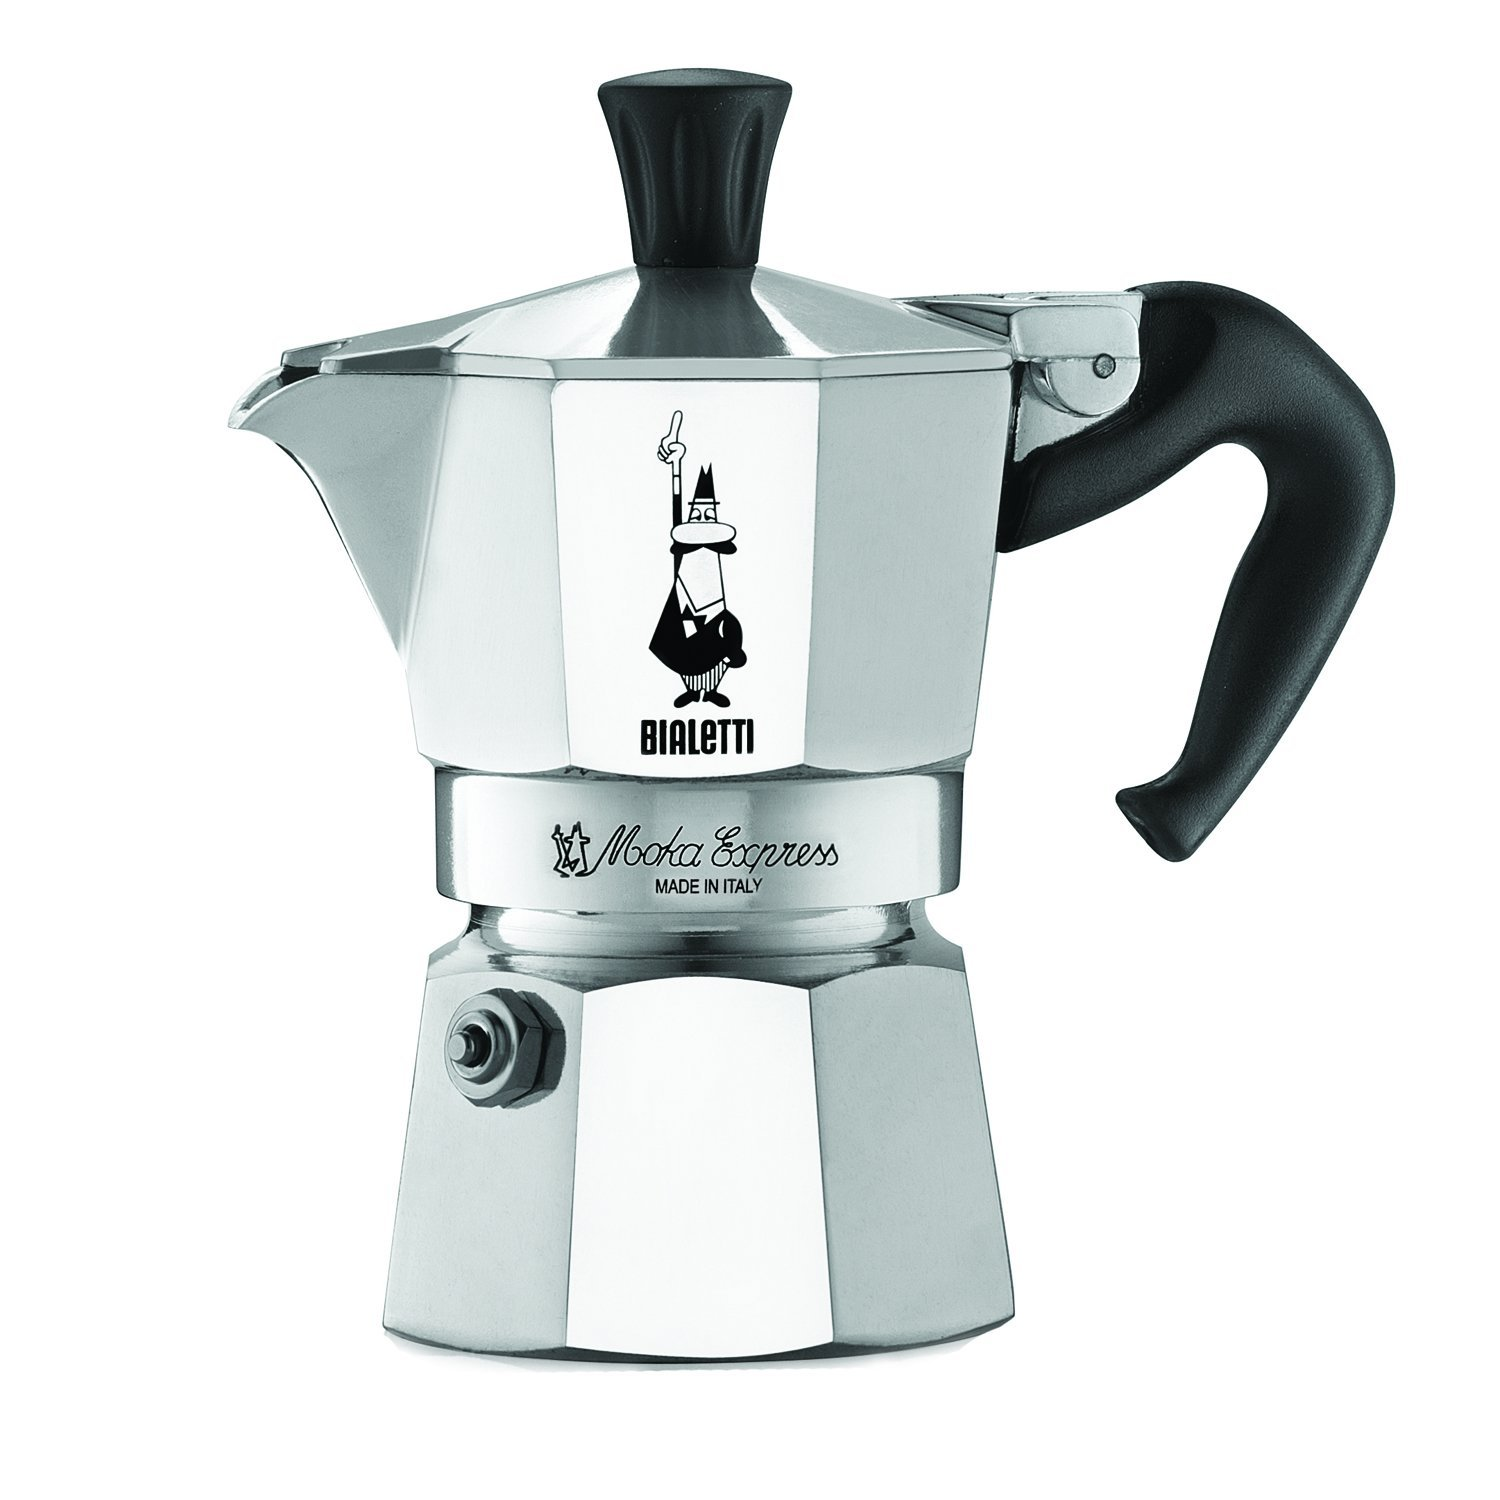 Amazon.com: The Original Bialetti Moka Express Made in Italy 1-Cup ...